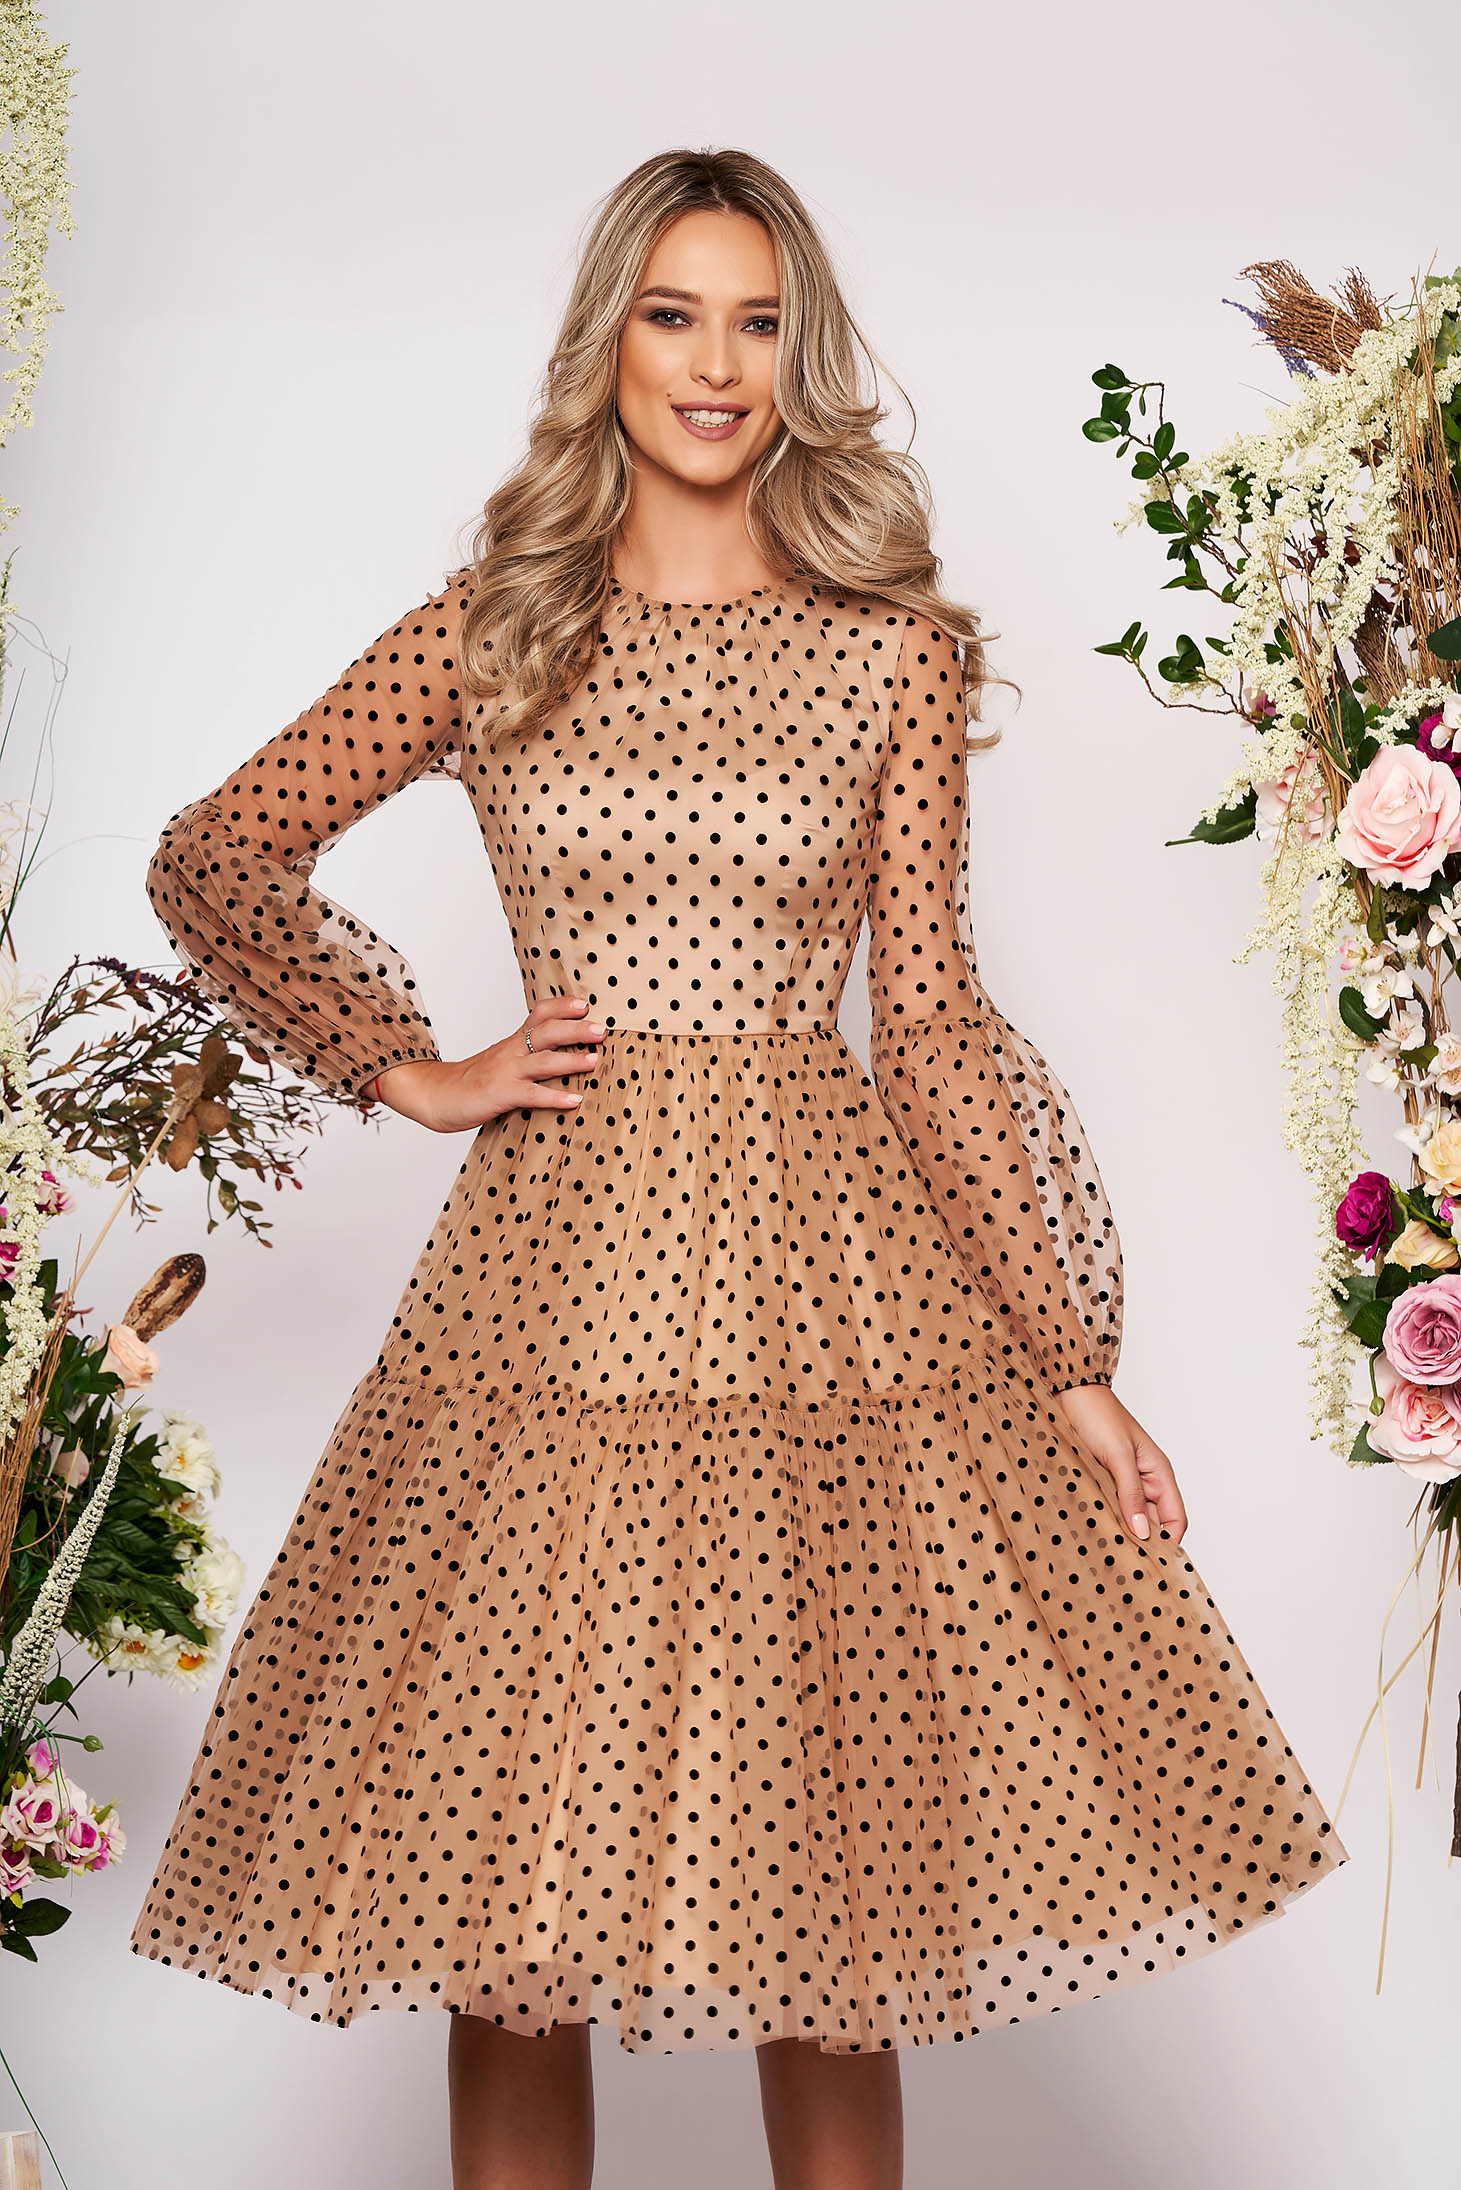 Cream dress occasional midi cloche from tulle dots print long sleeved transparent sleeves with puffed sleeves